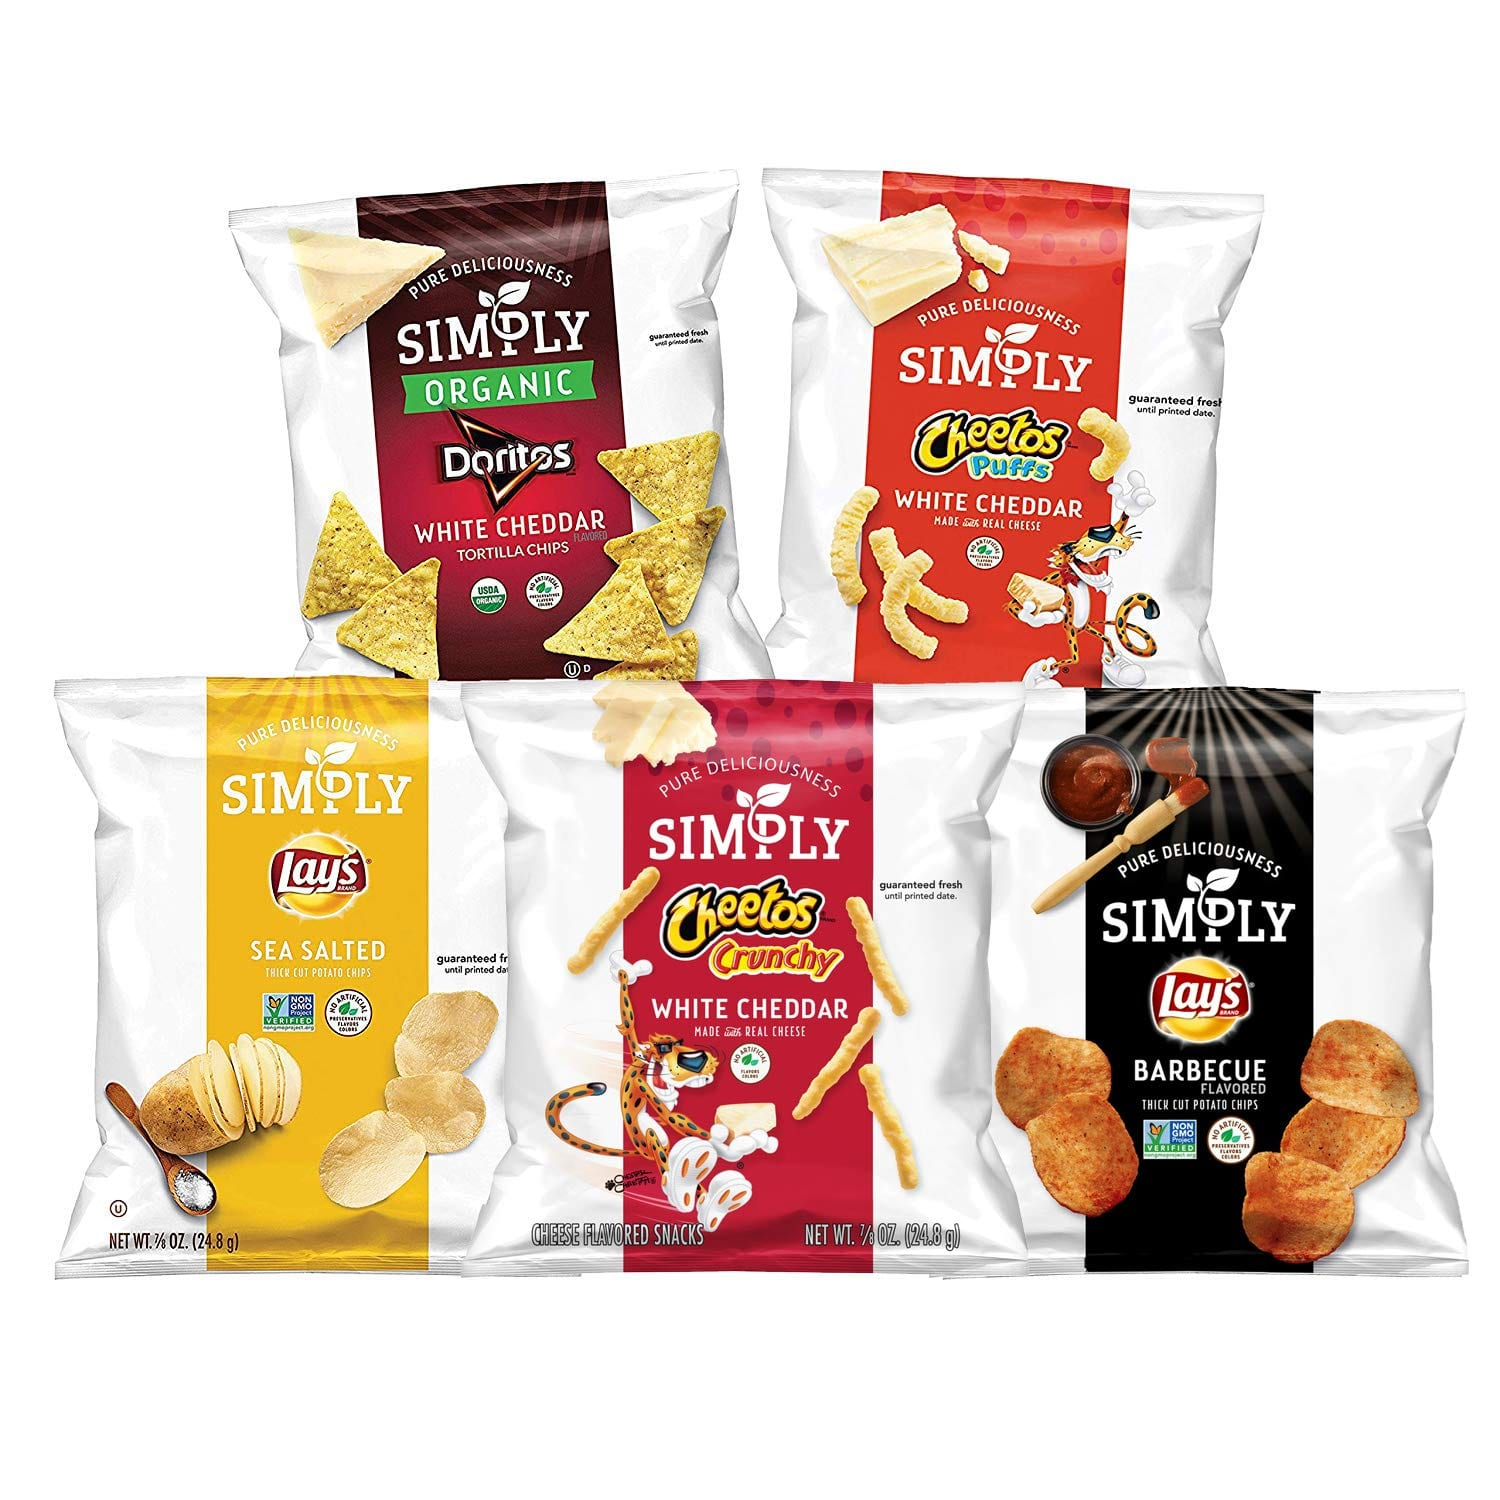 36-Count 0.875oz Simply Brand Organic Doritos Tortilla Chips, Variety Pack $9.45 w/ S&S & More + Free s/h